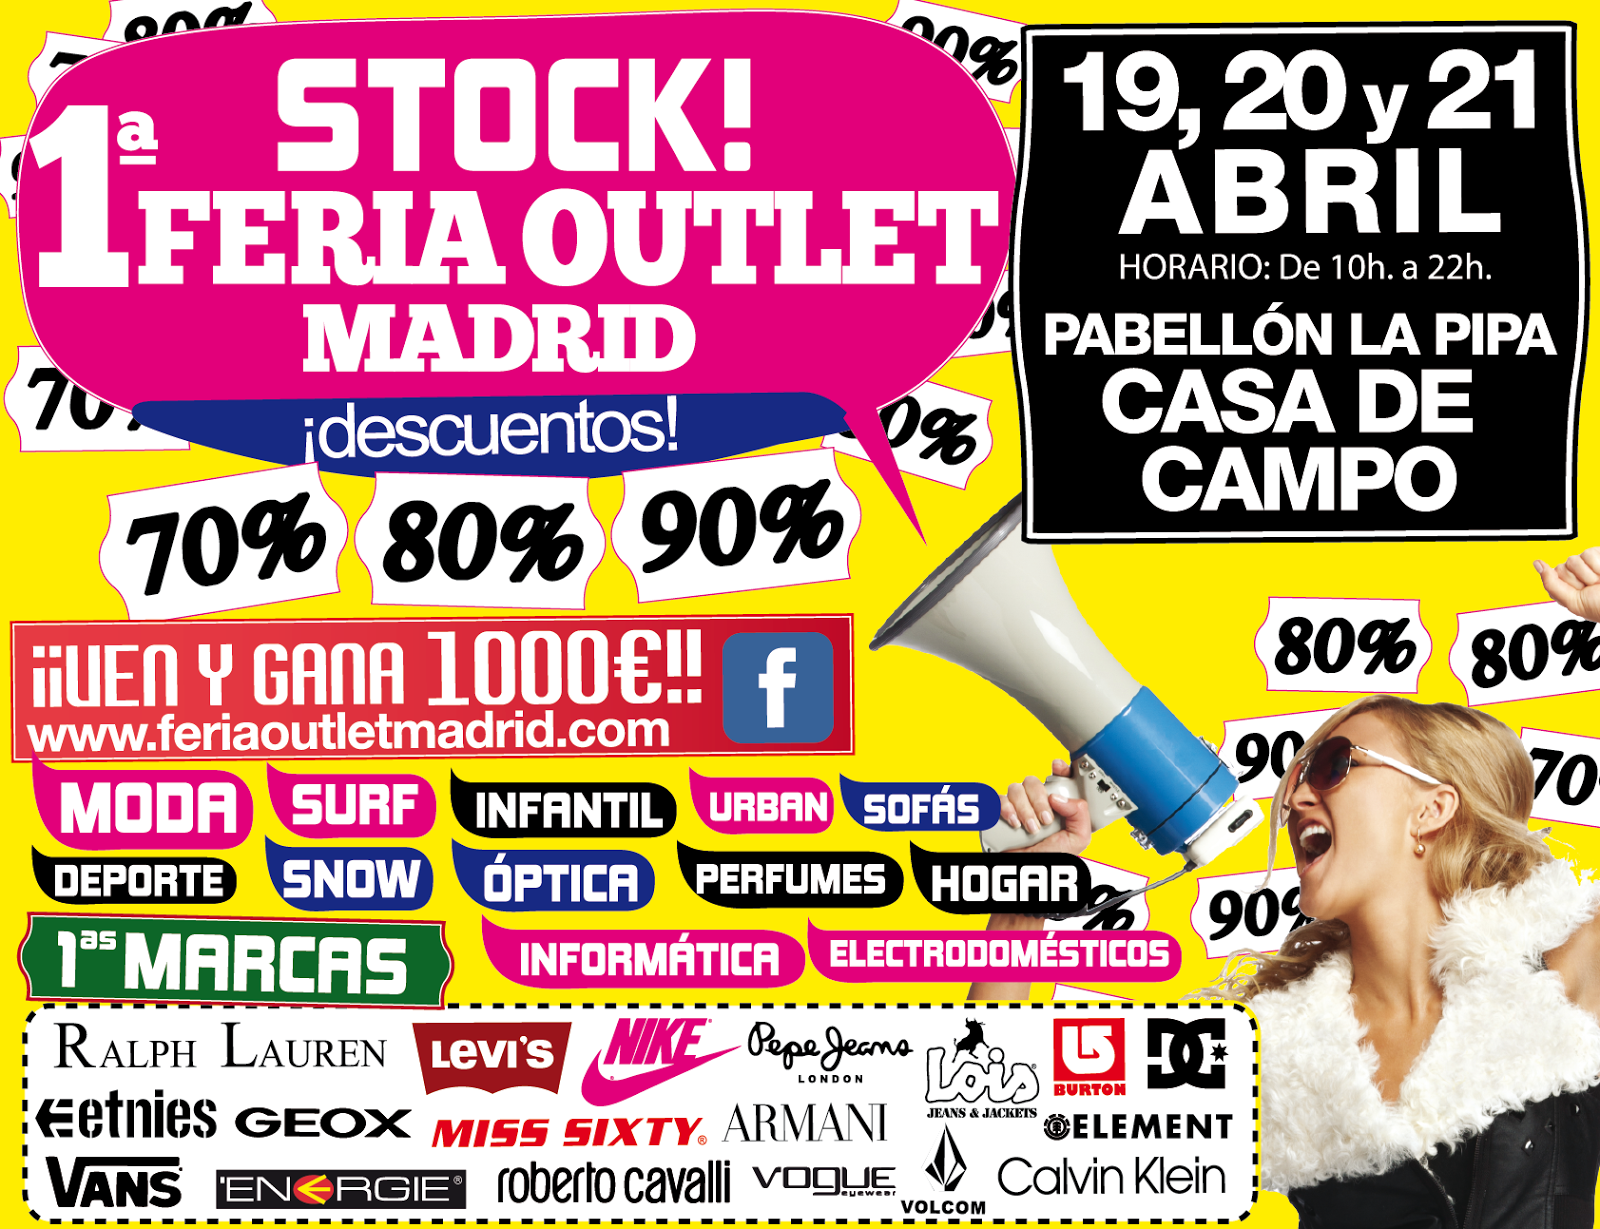 Soybarbarella for Outlet casa